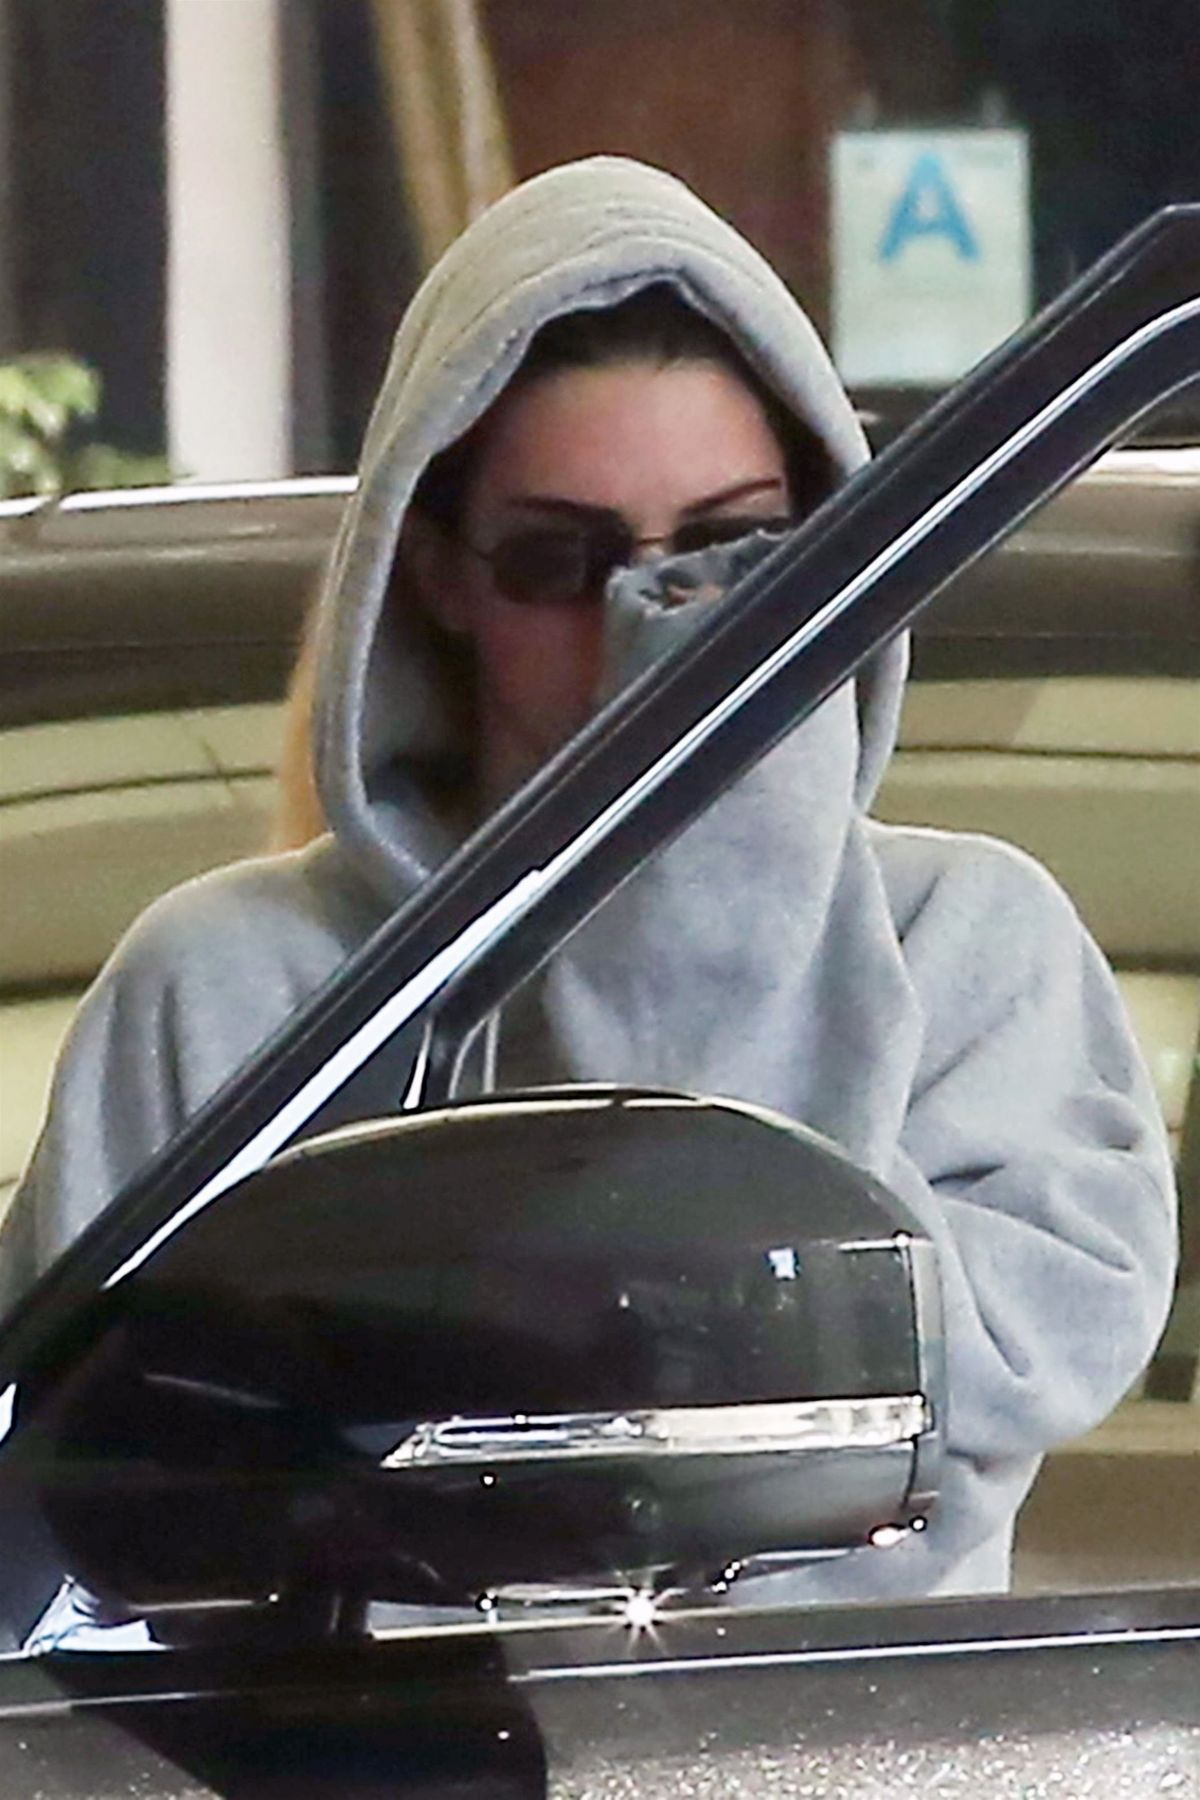 KENDALL JENNER Leaves a Dermatologist in Beverly Hills 11/28